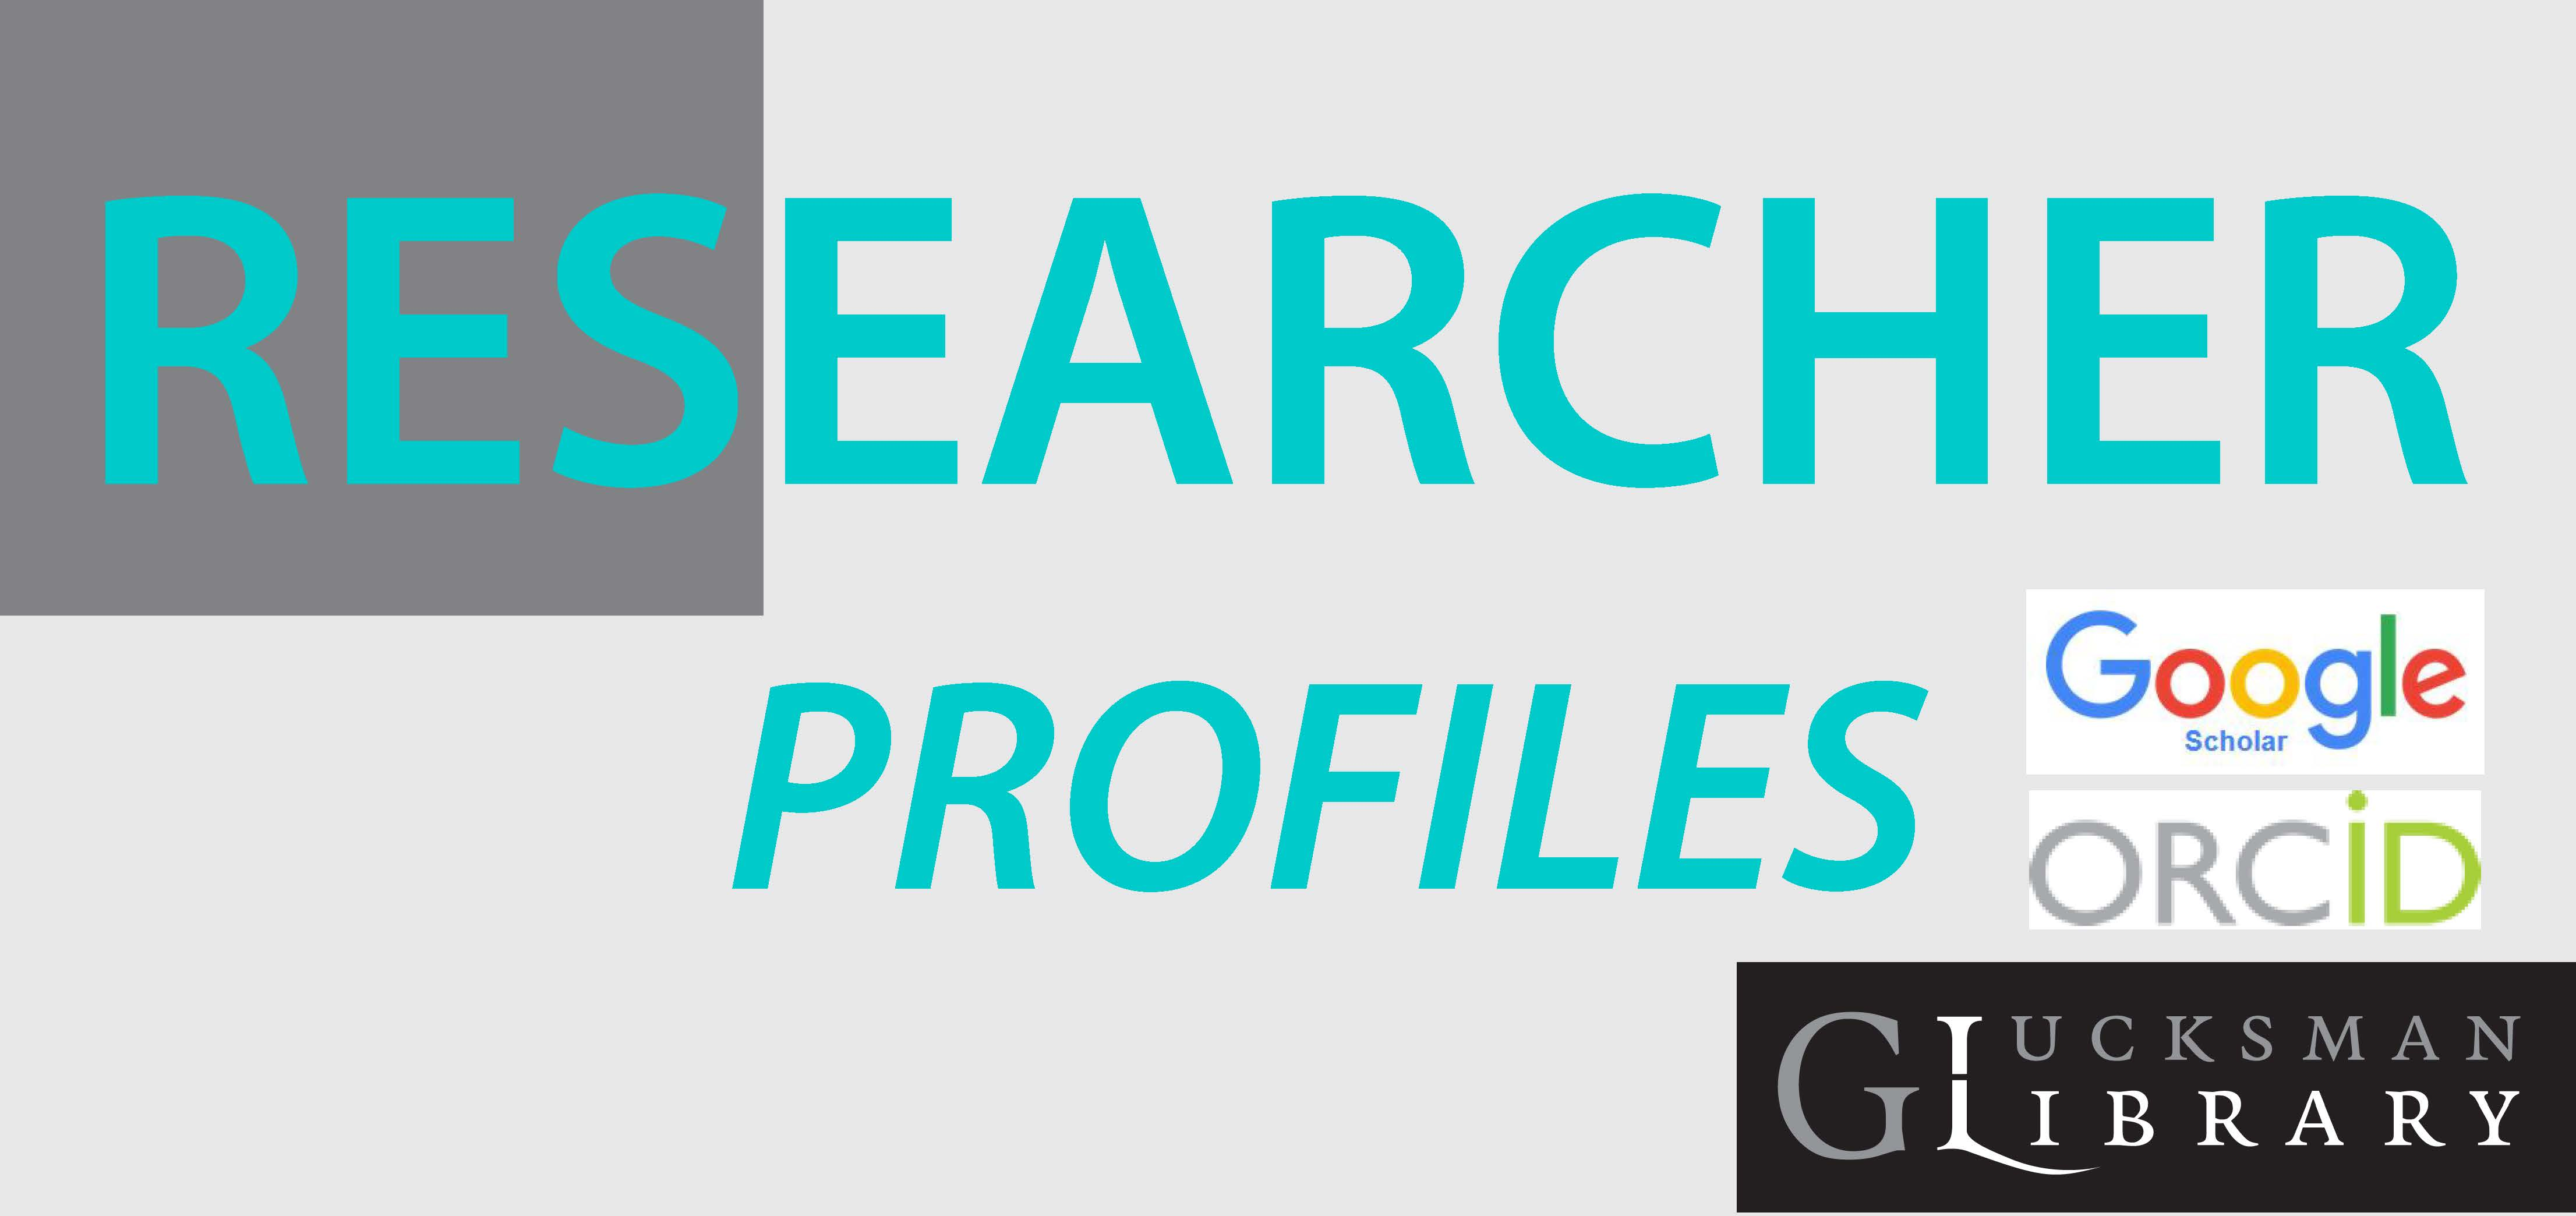 Researcher Profiles: How to create ORCID & Google Scholar profiles